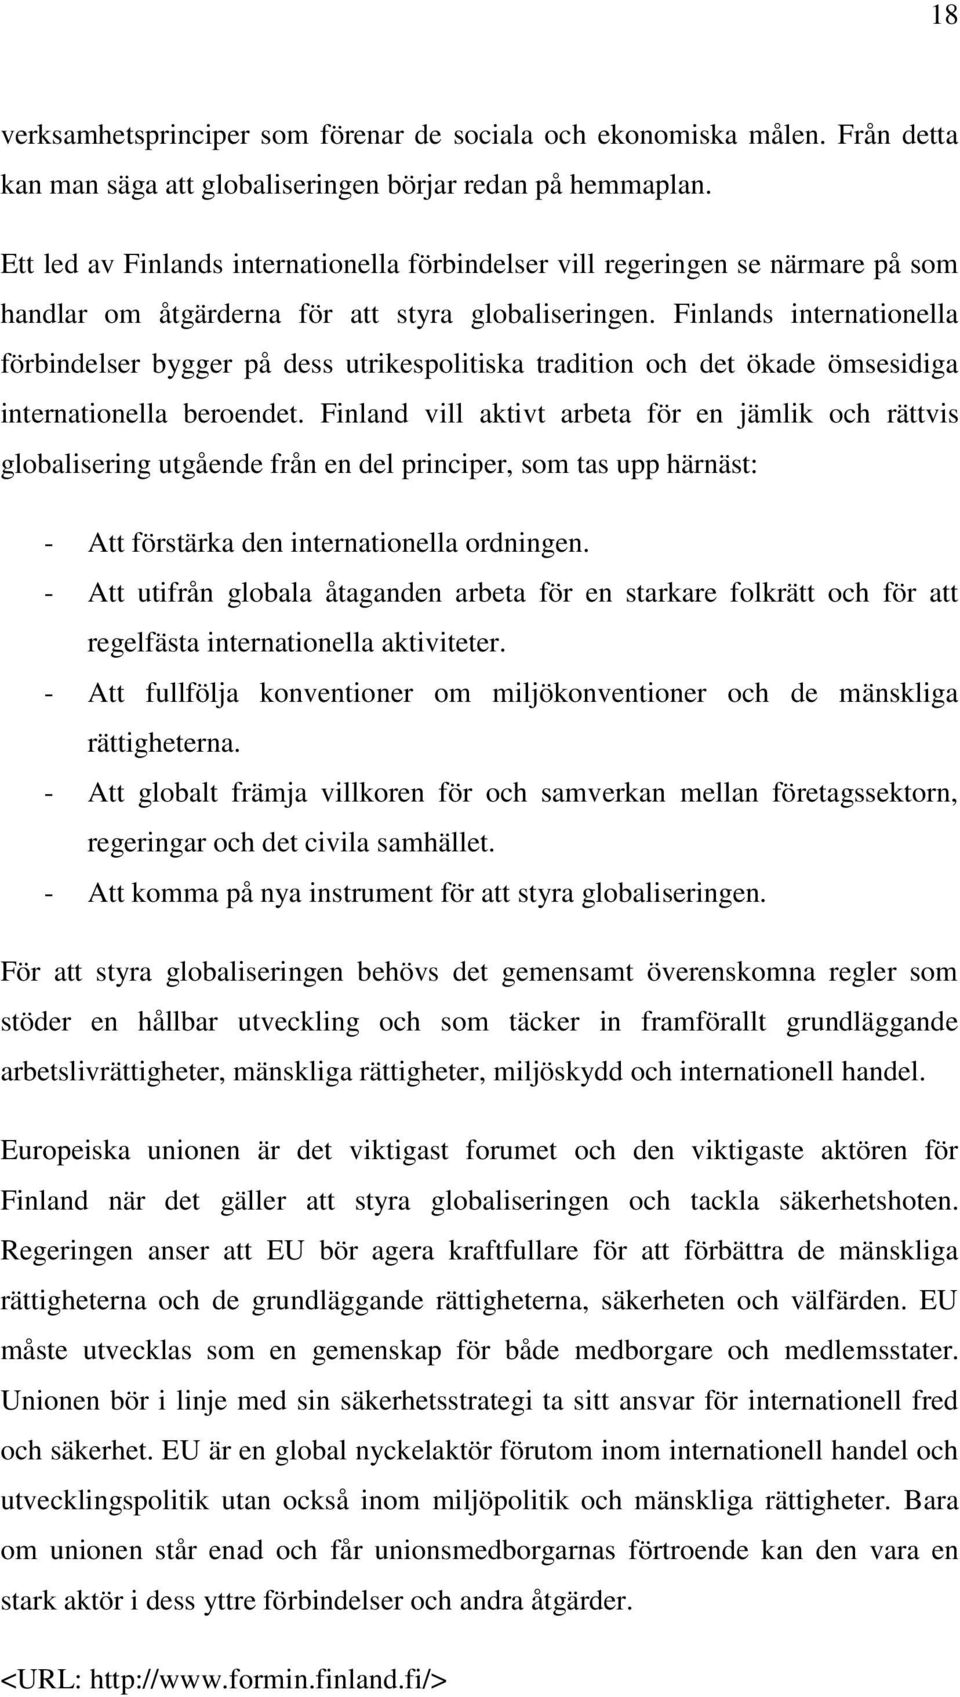 Finlands internationella förbindelser bygger på dess utrikespolitiska tradition och det ökade ömsesidiga internationella beroendet.